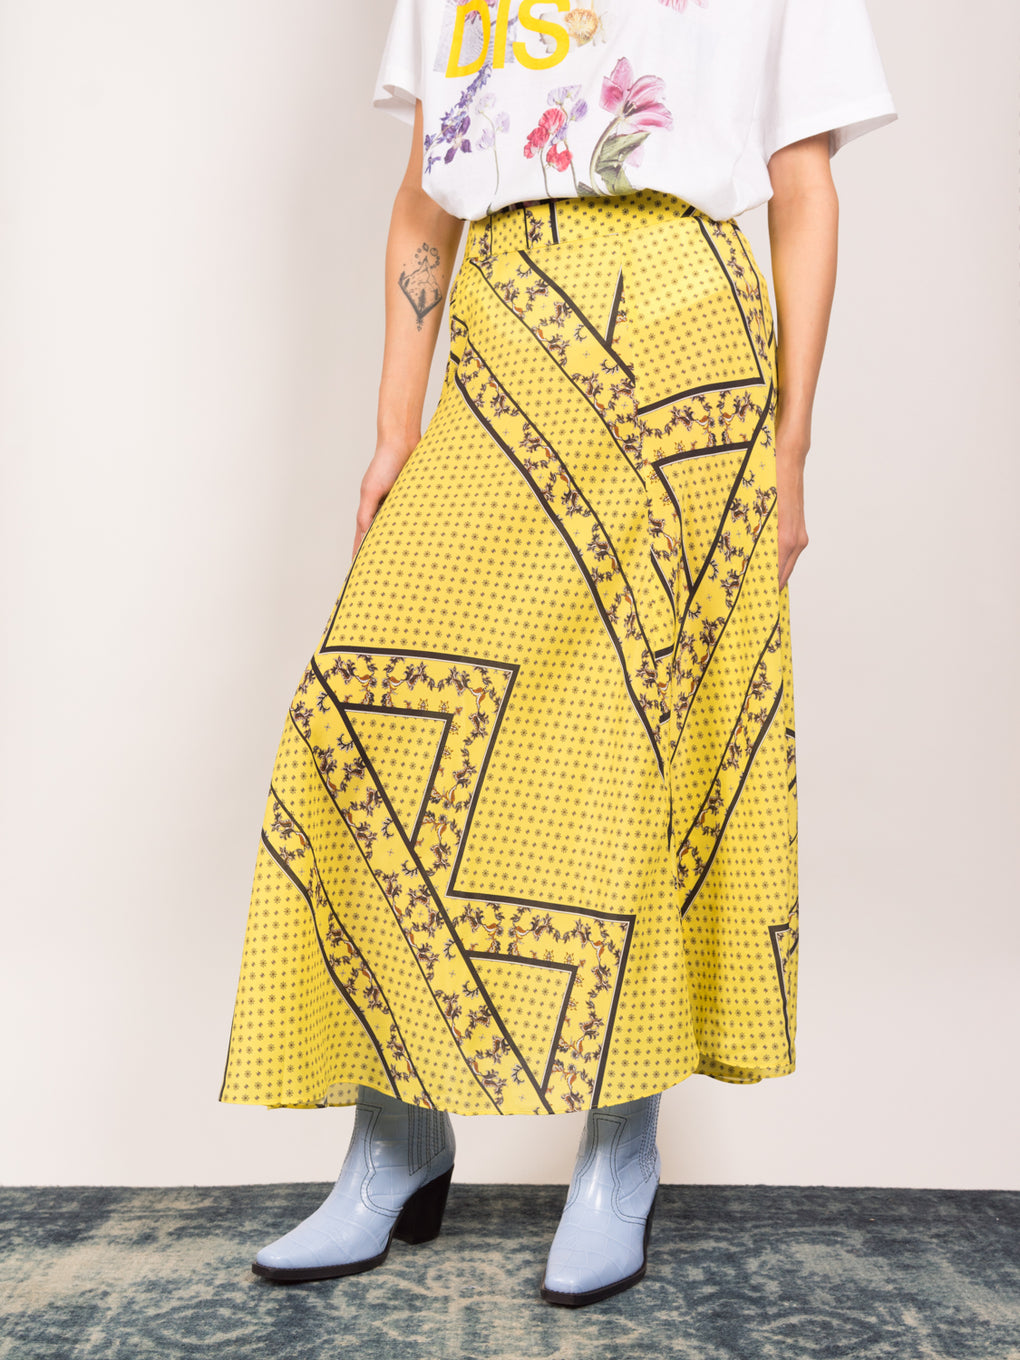 Ganni womens silk skirt in mix print, yellow and black print